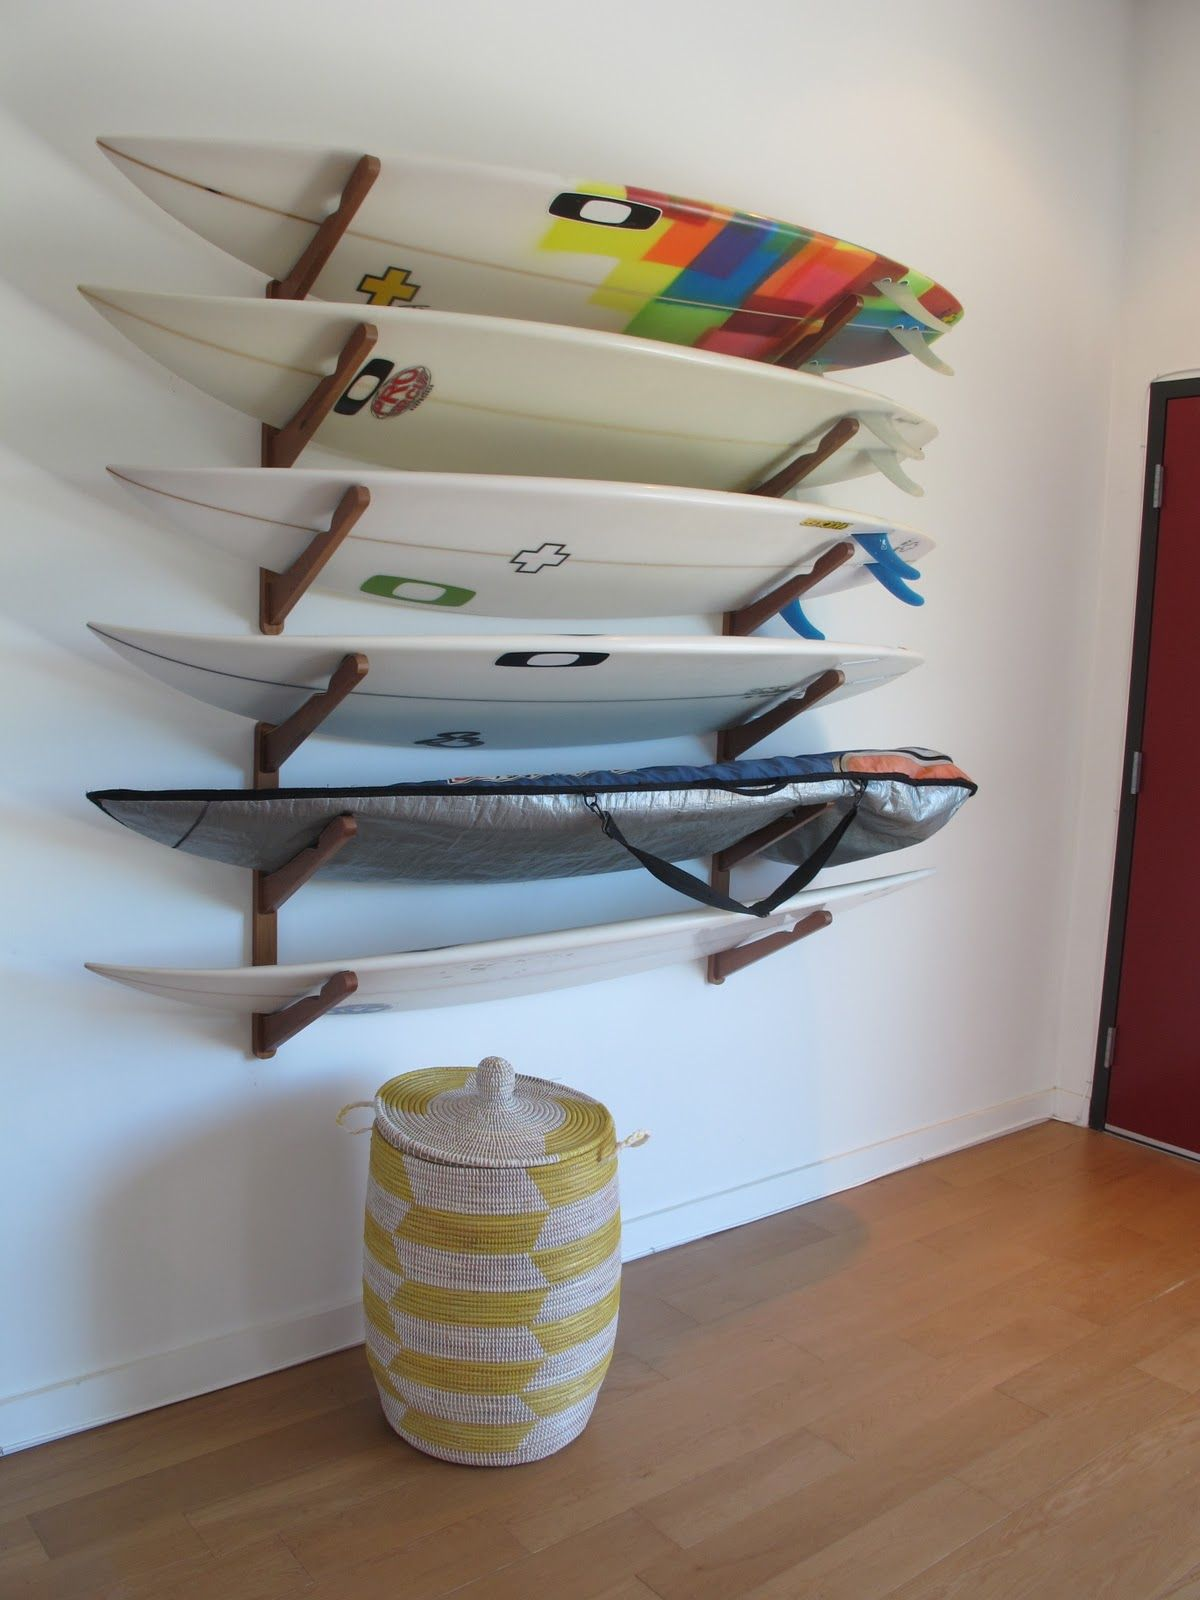 this surfboards up blogs foam with longboard inch cor surf news an wall your rack from stand or made will organized get and securely has hold long arm img racks paddleboard surfboard steel solid any cushioned